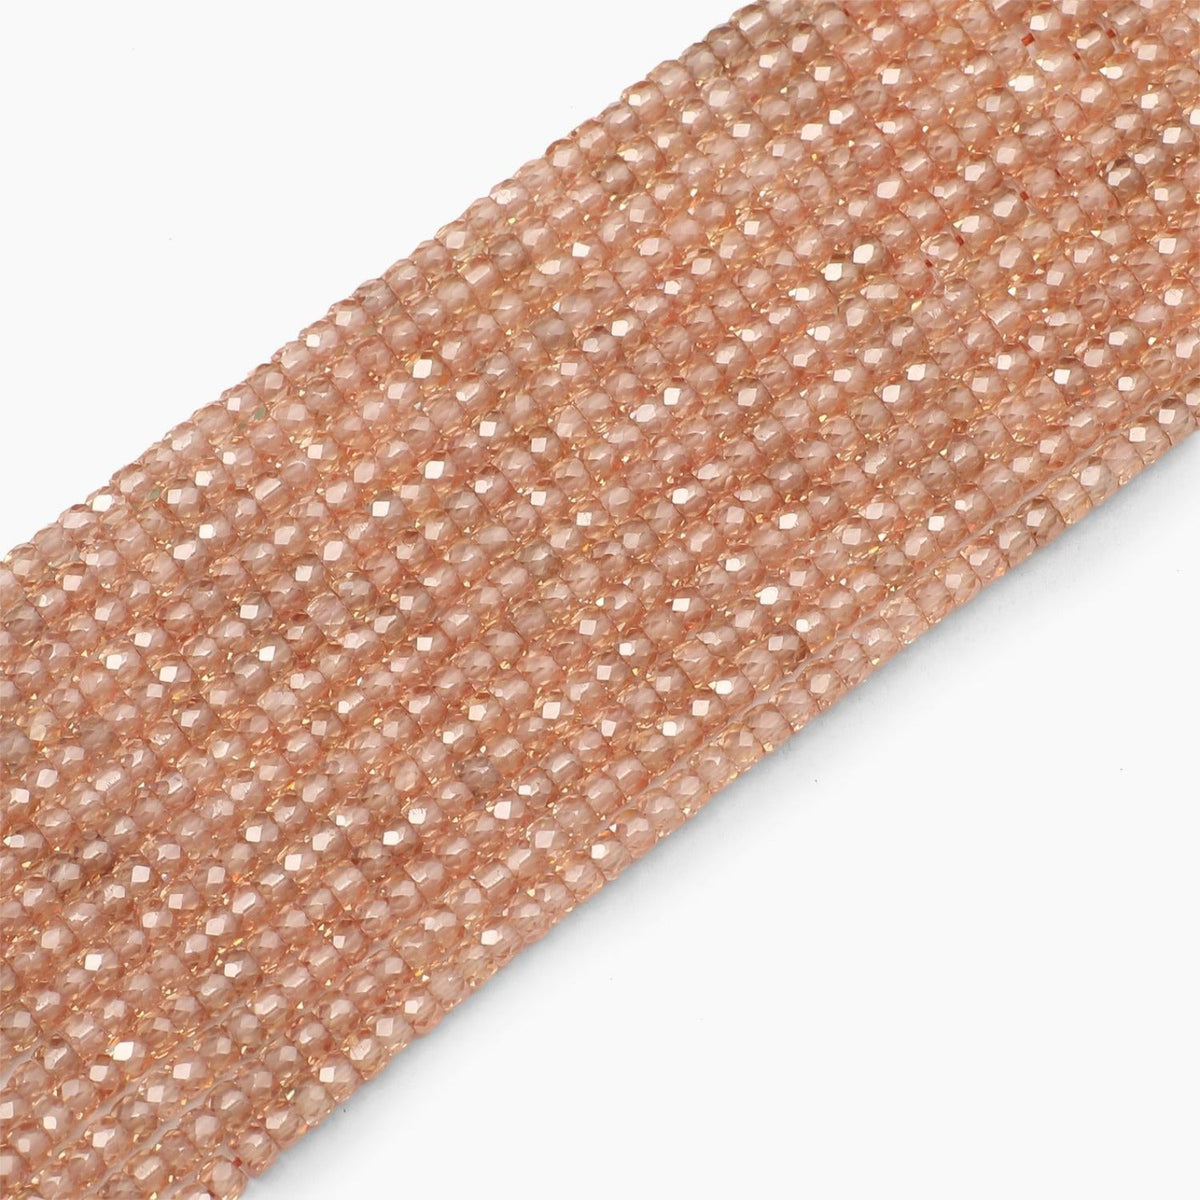 Light Champagne Faceted Cubic Zirconia Beads- Sold Per Strand